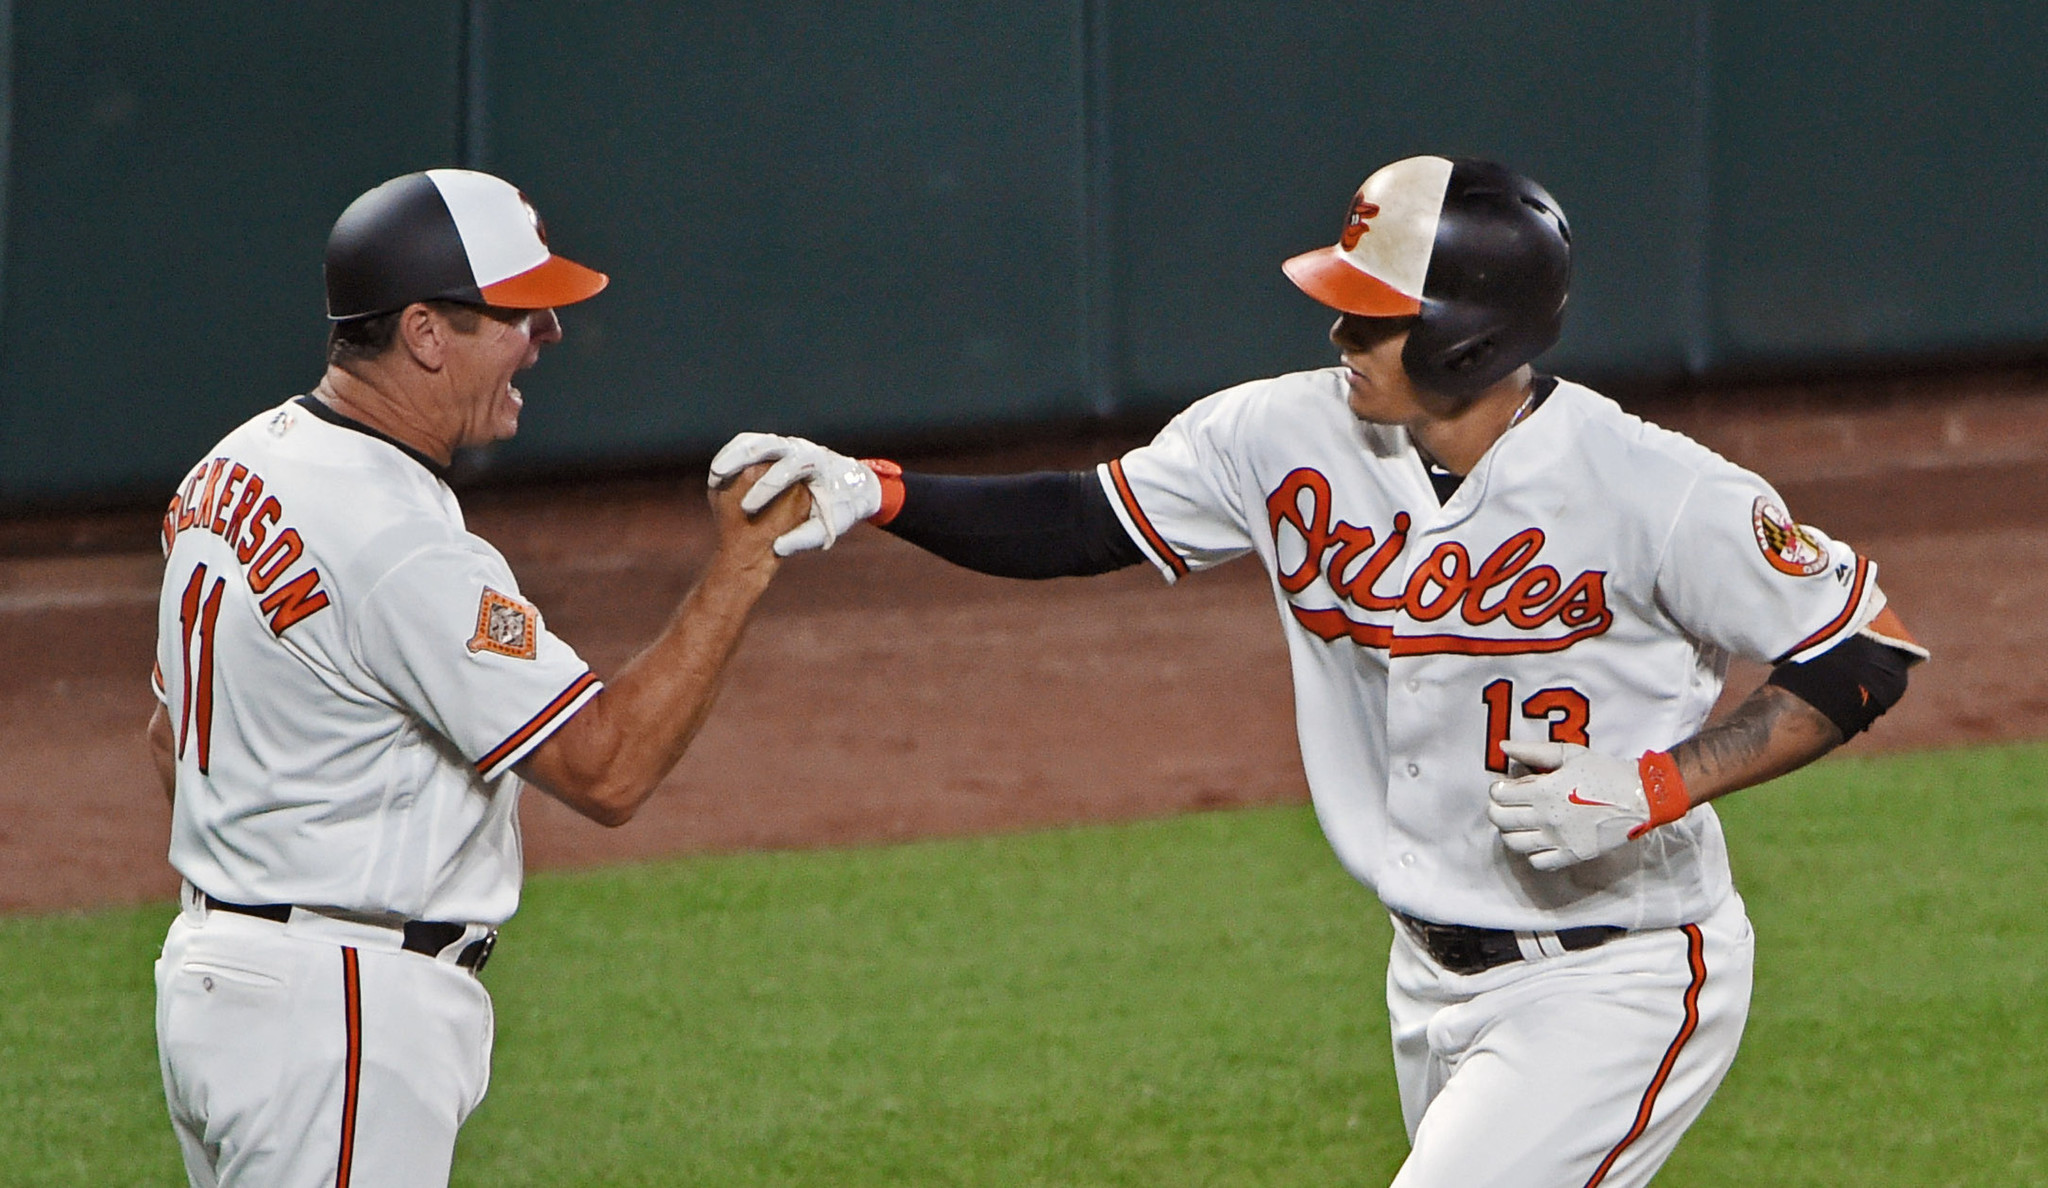 Bal-orioles-on-deck-what-to-watch-wednesday-vs-indians-20170621